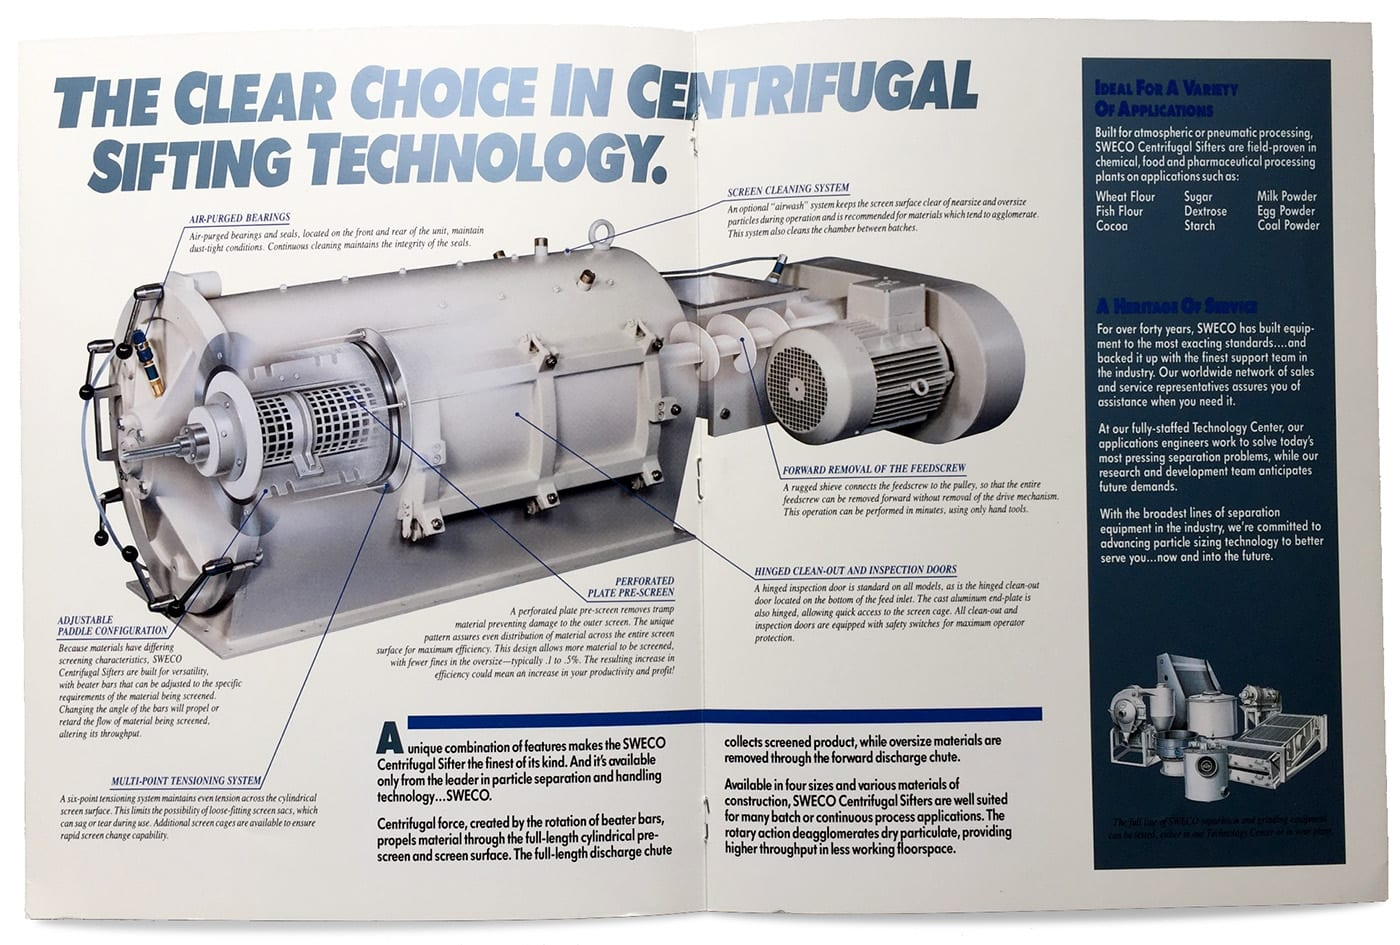 1980s industrial advertisement and illustration for centrifugal sifting